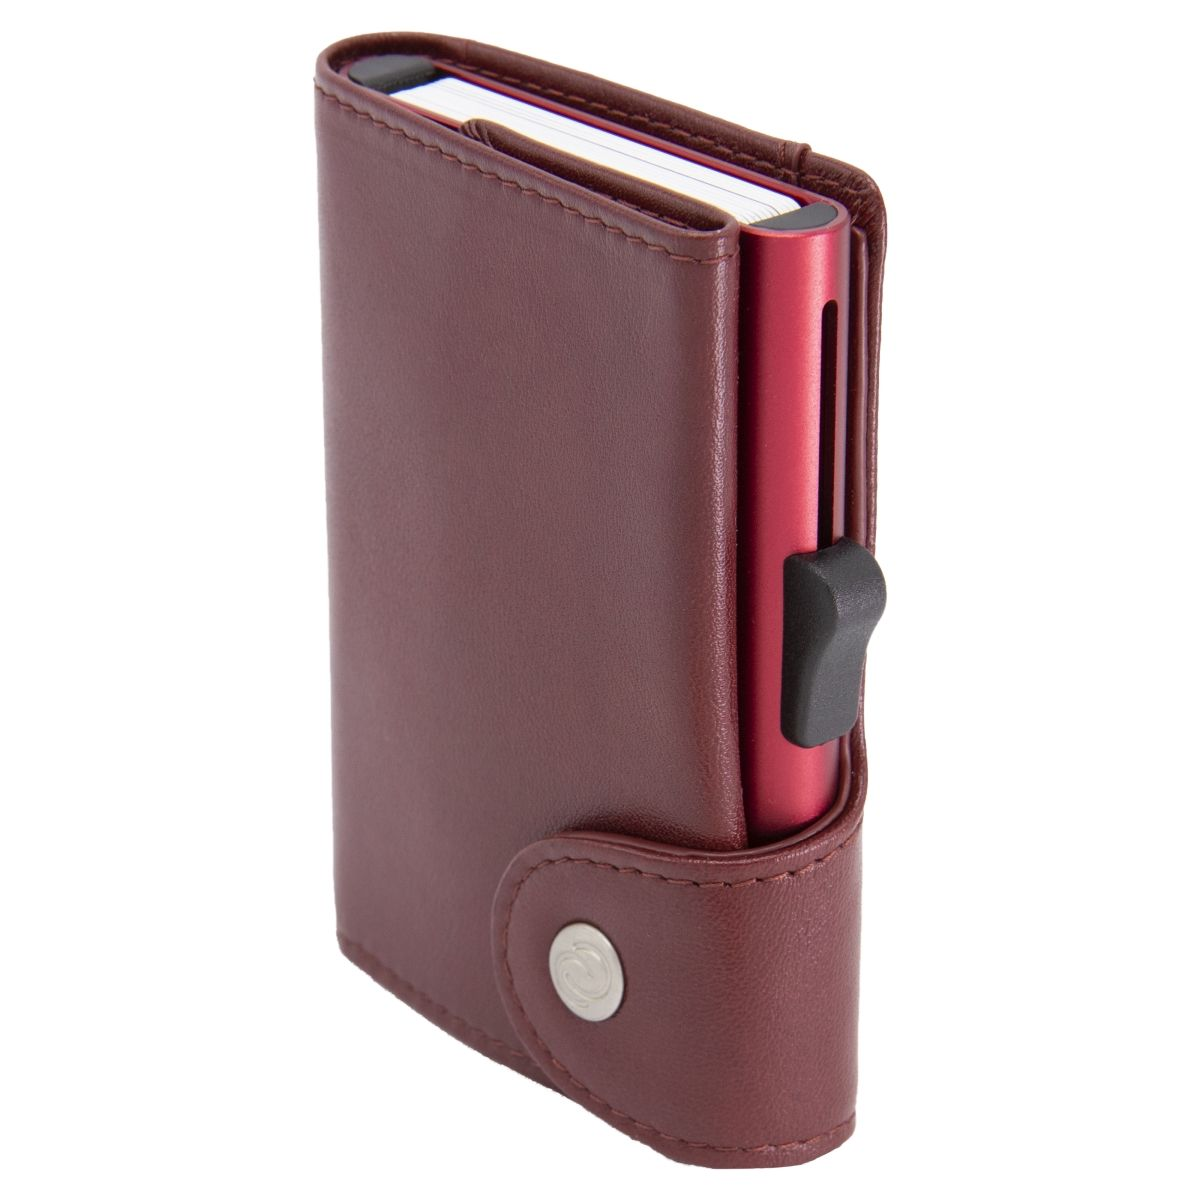 XL Aluminum Wallet with Genuine Leather - Red